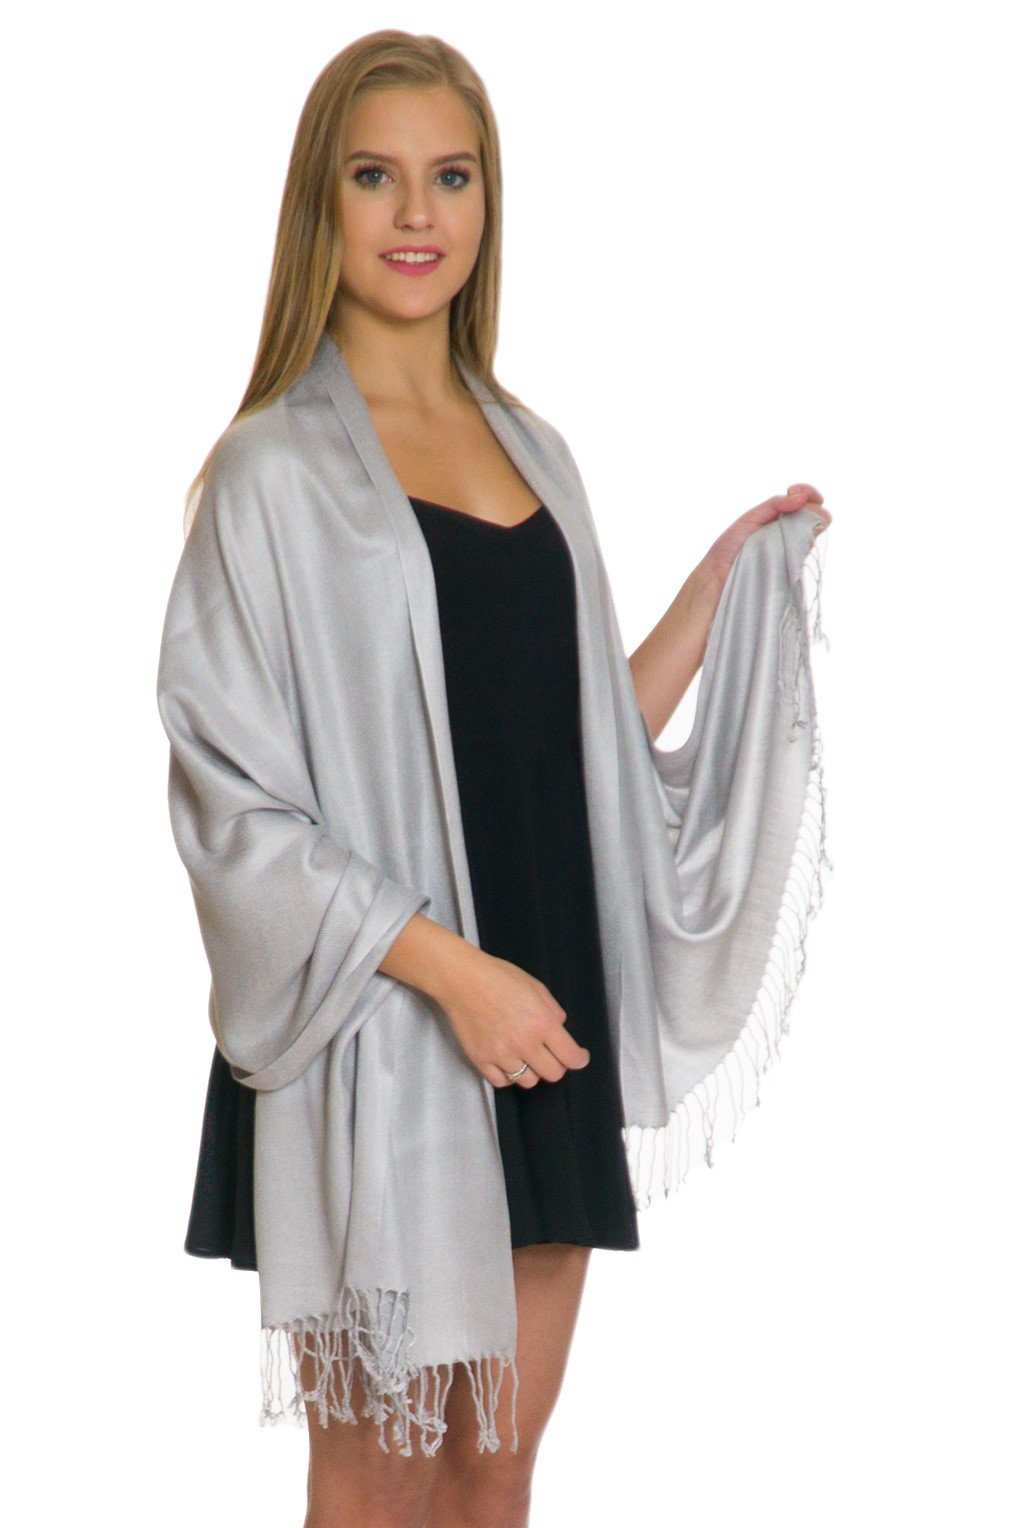 Pashmina Shawls and Wraps - Large Scarfs for Women - Party Bridal Long Fashion Shawl Wrap with Fringe by Petal Rose Light Grey Silver